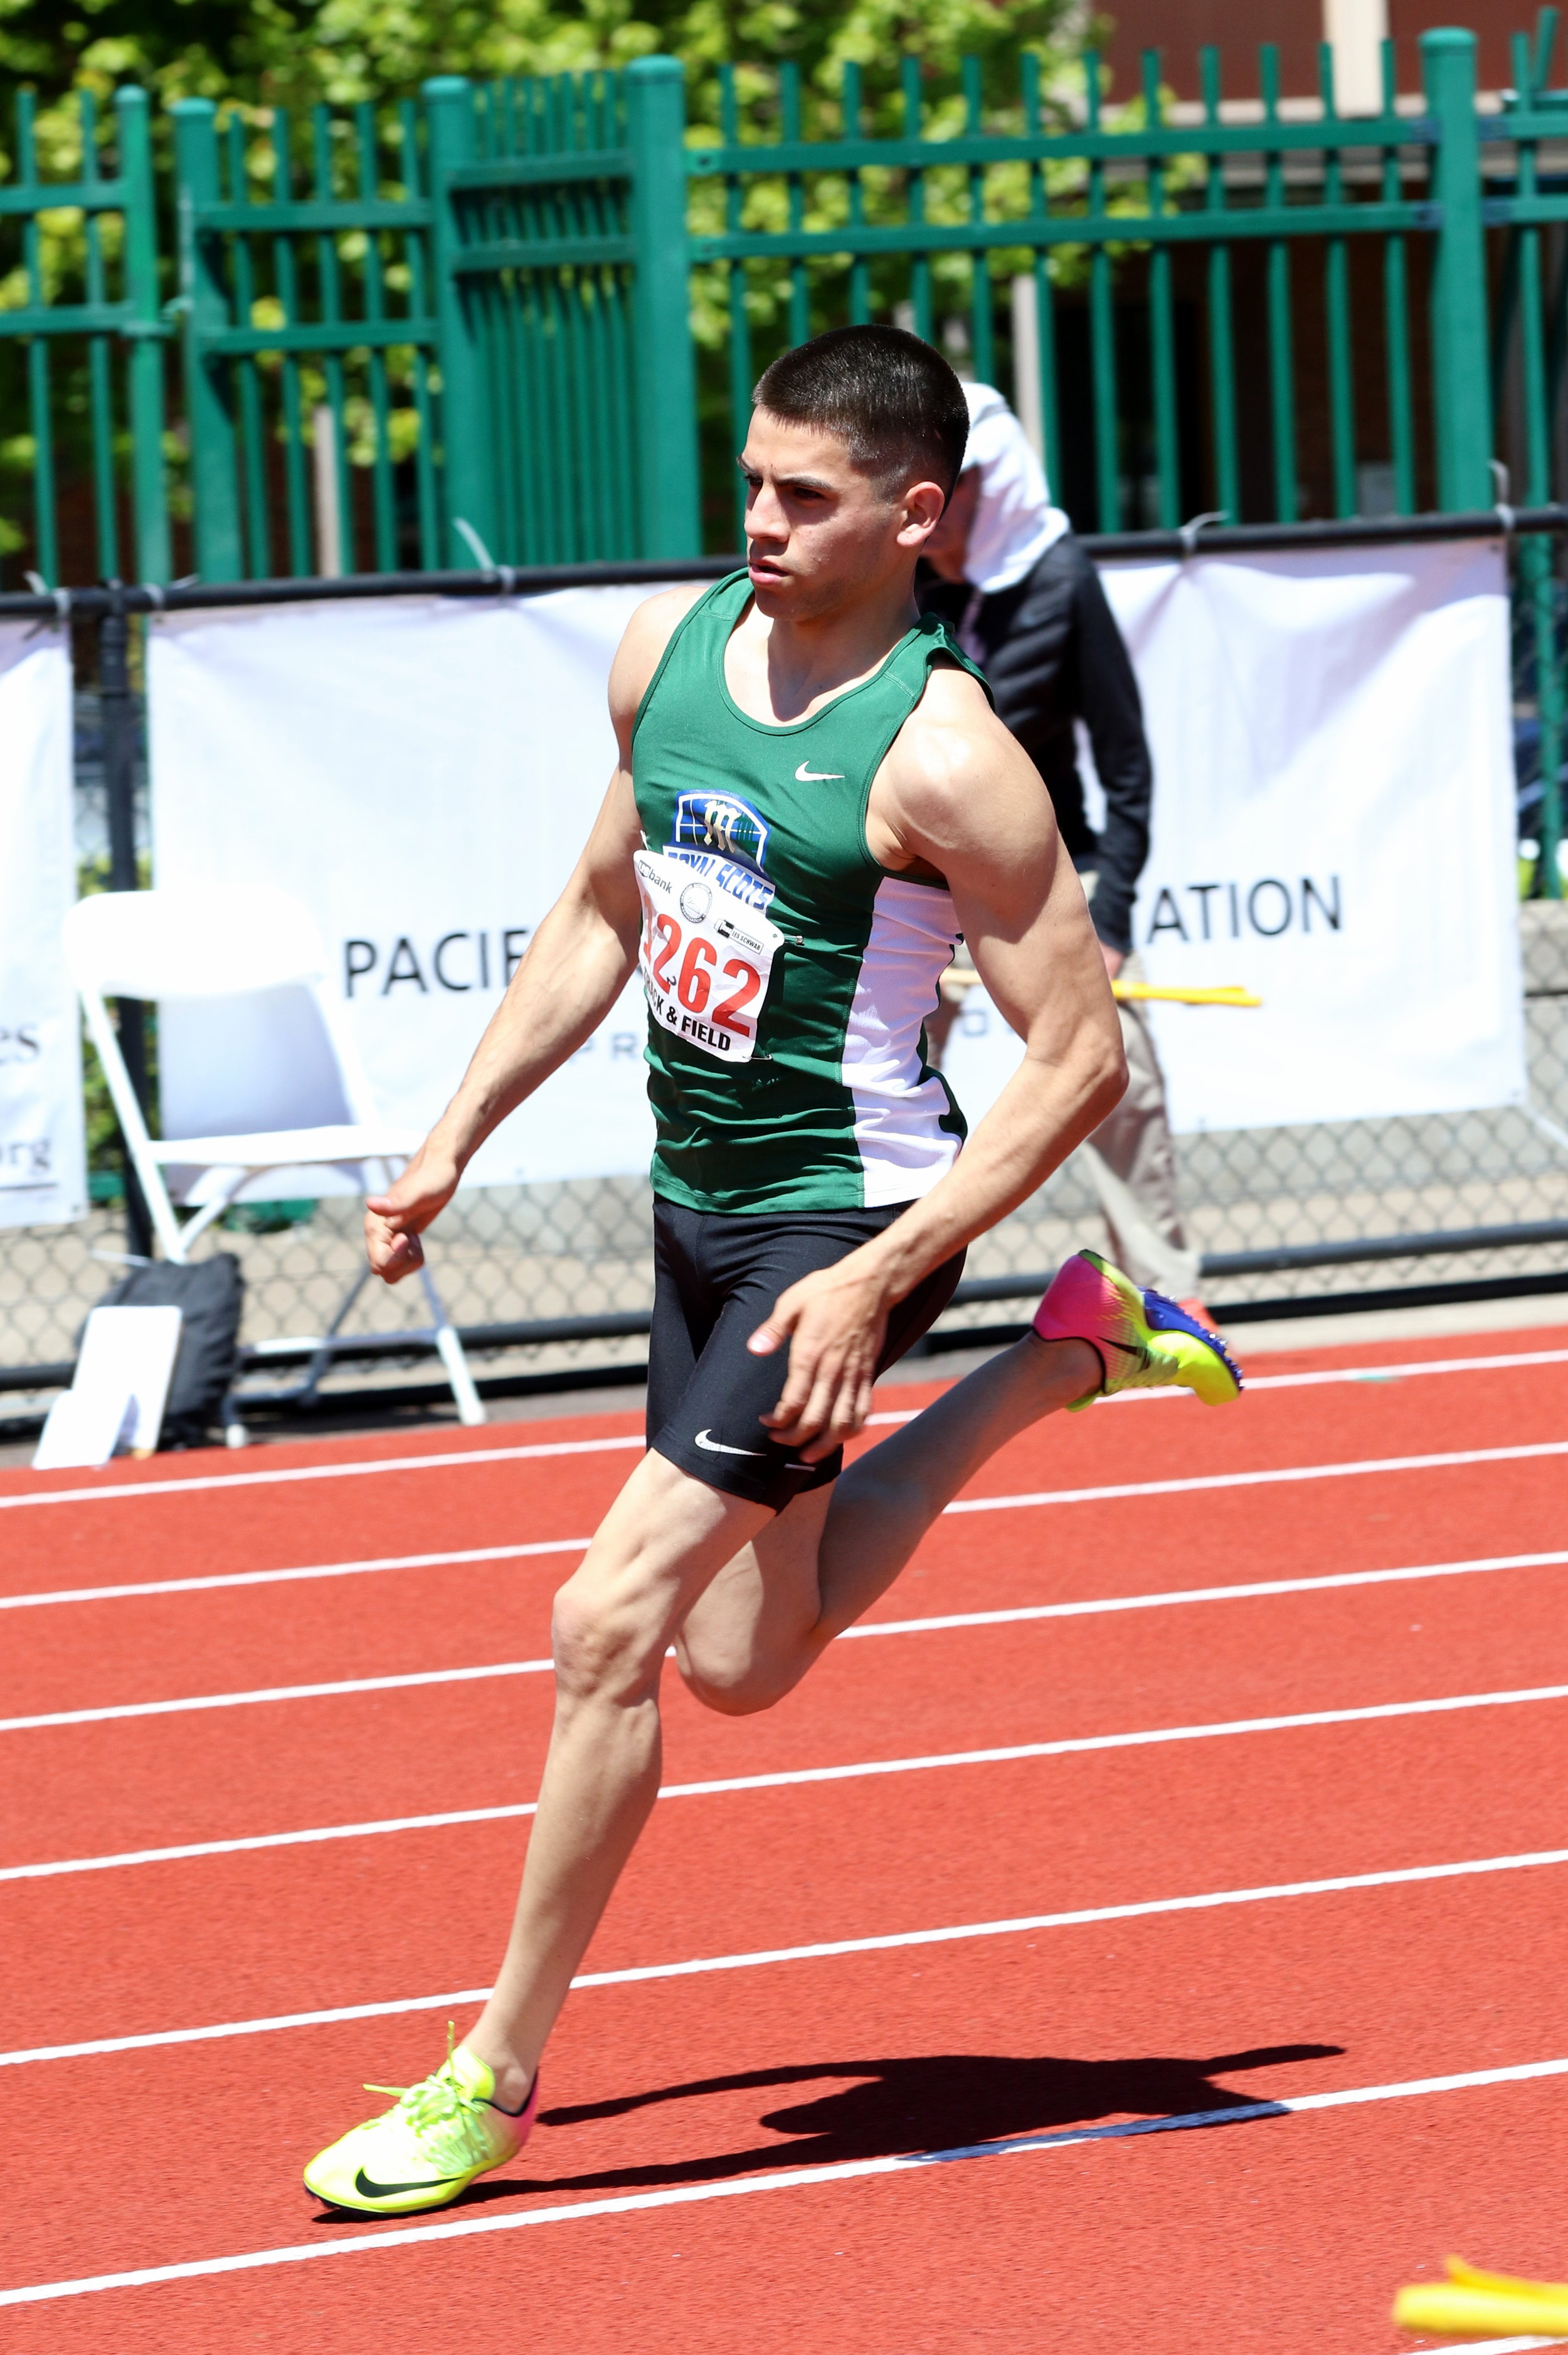 2017 - Israel Garza placed 5th at state in the 100-meter dash. Photo by Kent Brewer.